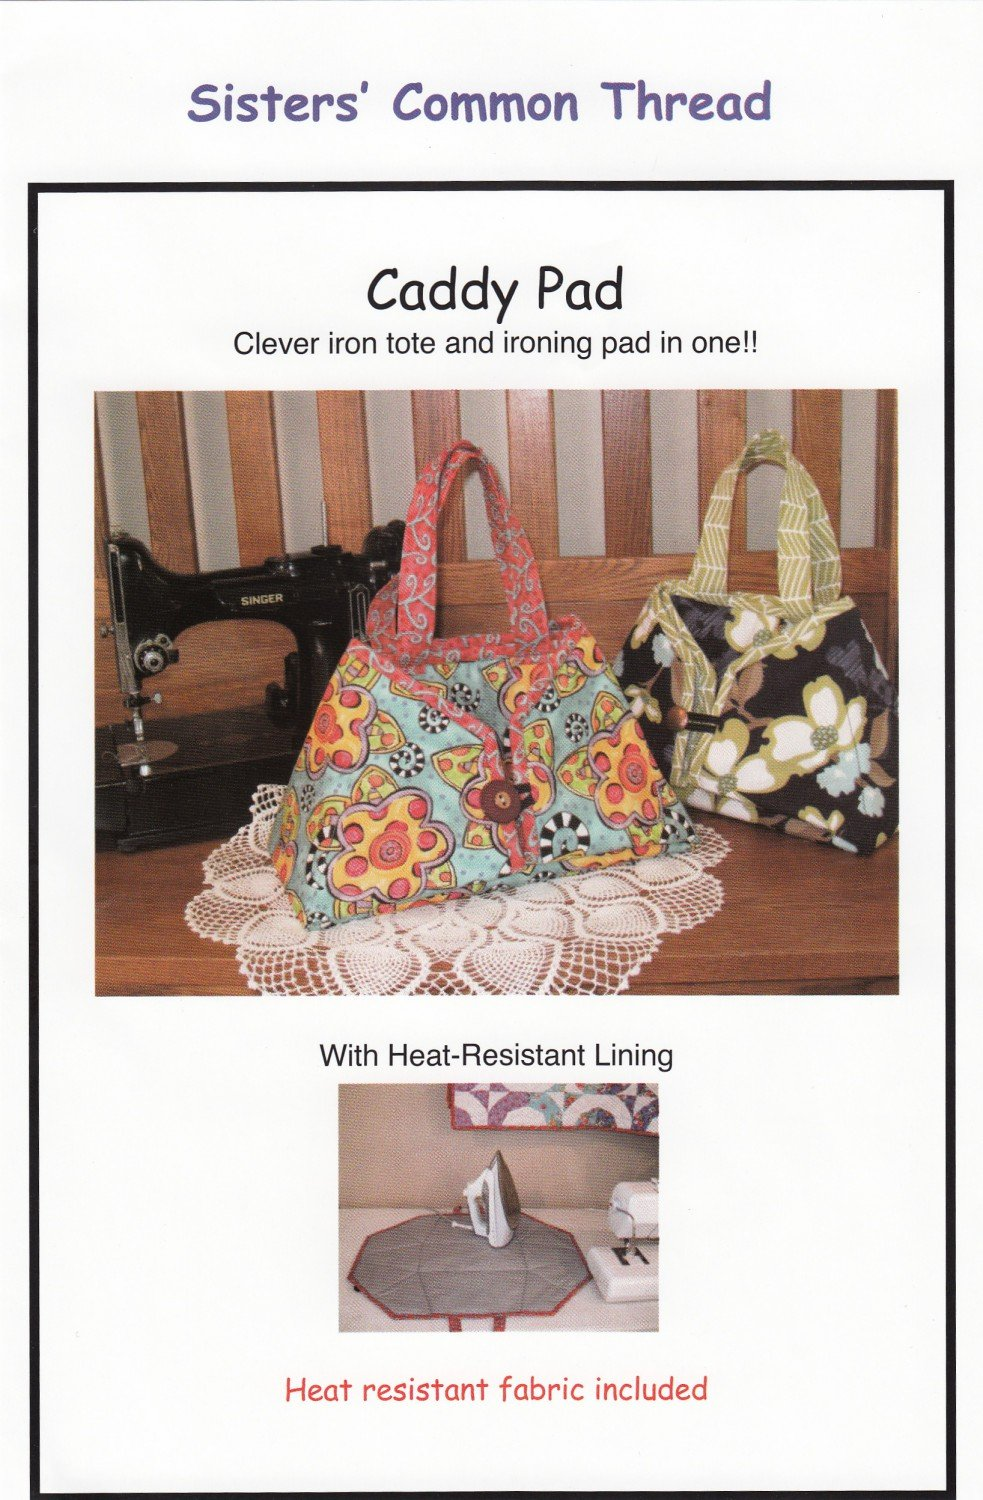 *Caddy Pad Full Size - SCT10103